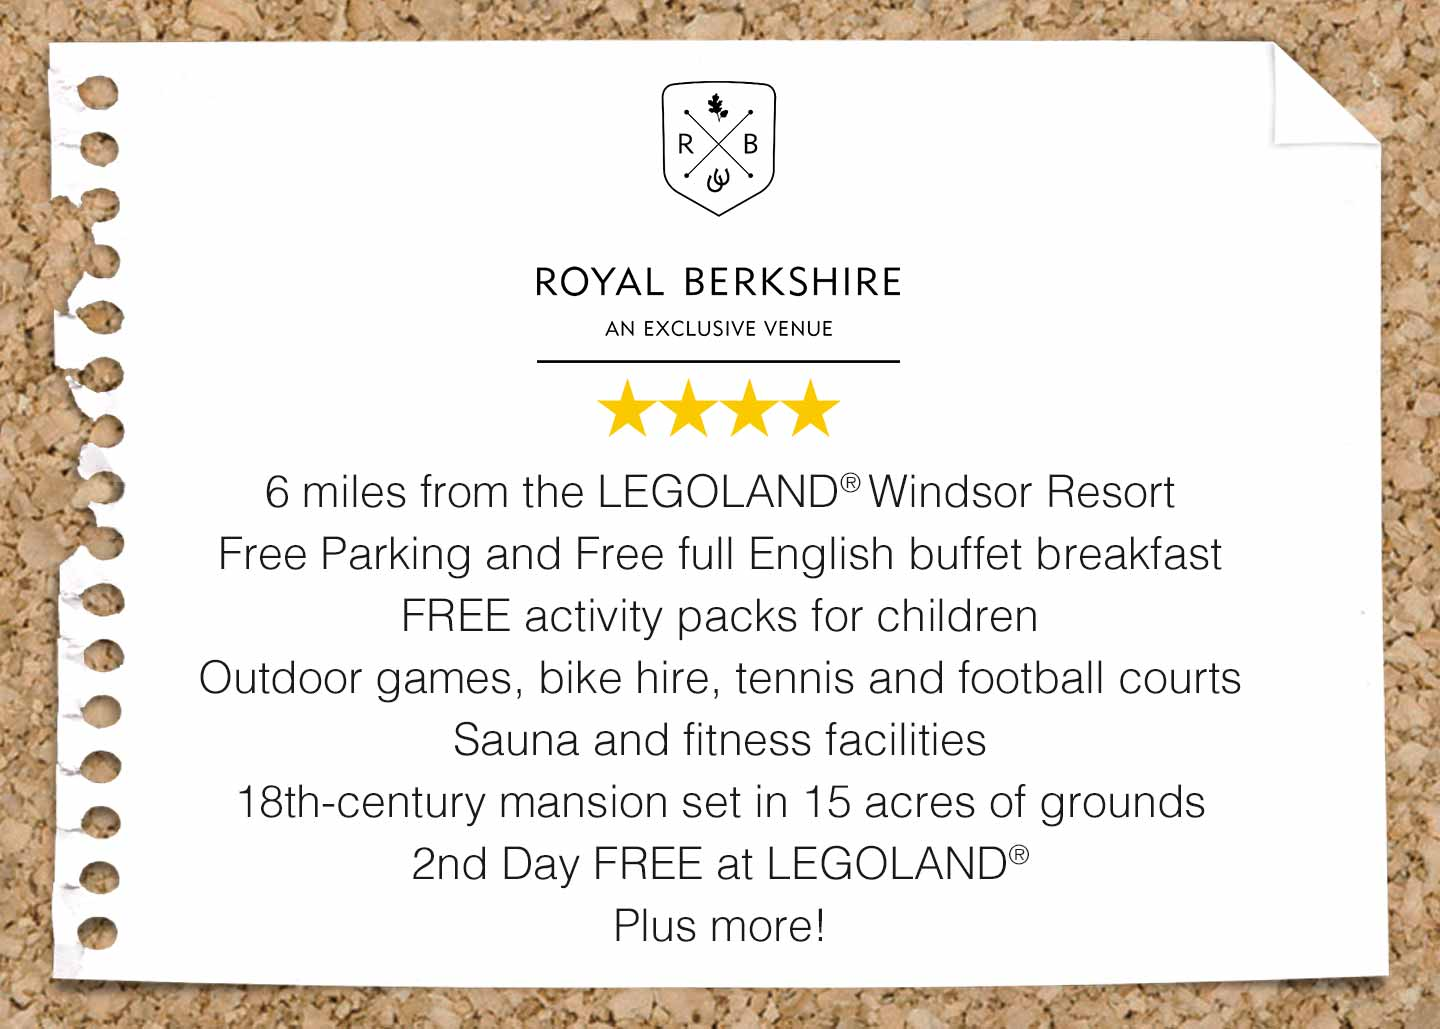 Royal Berkshire Hotel near LEGOLAND Windsor Resort